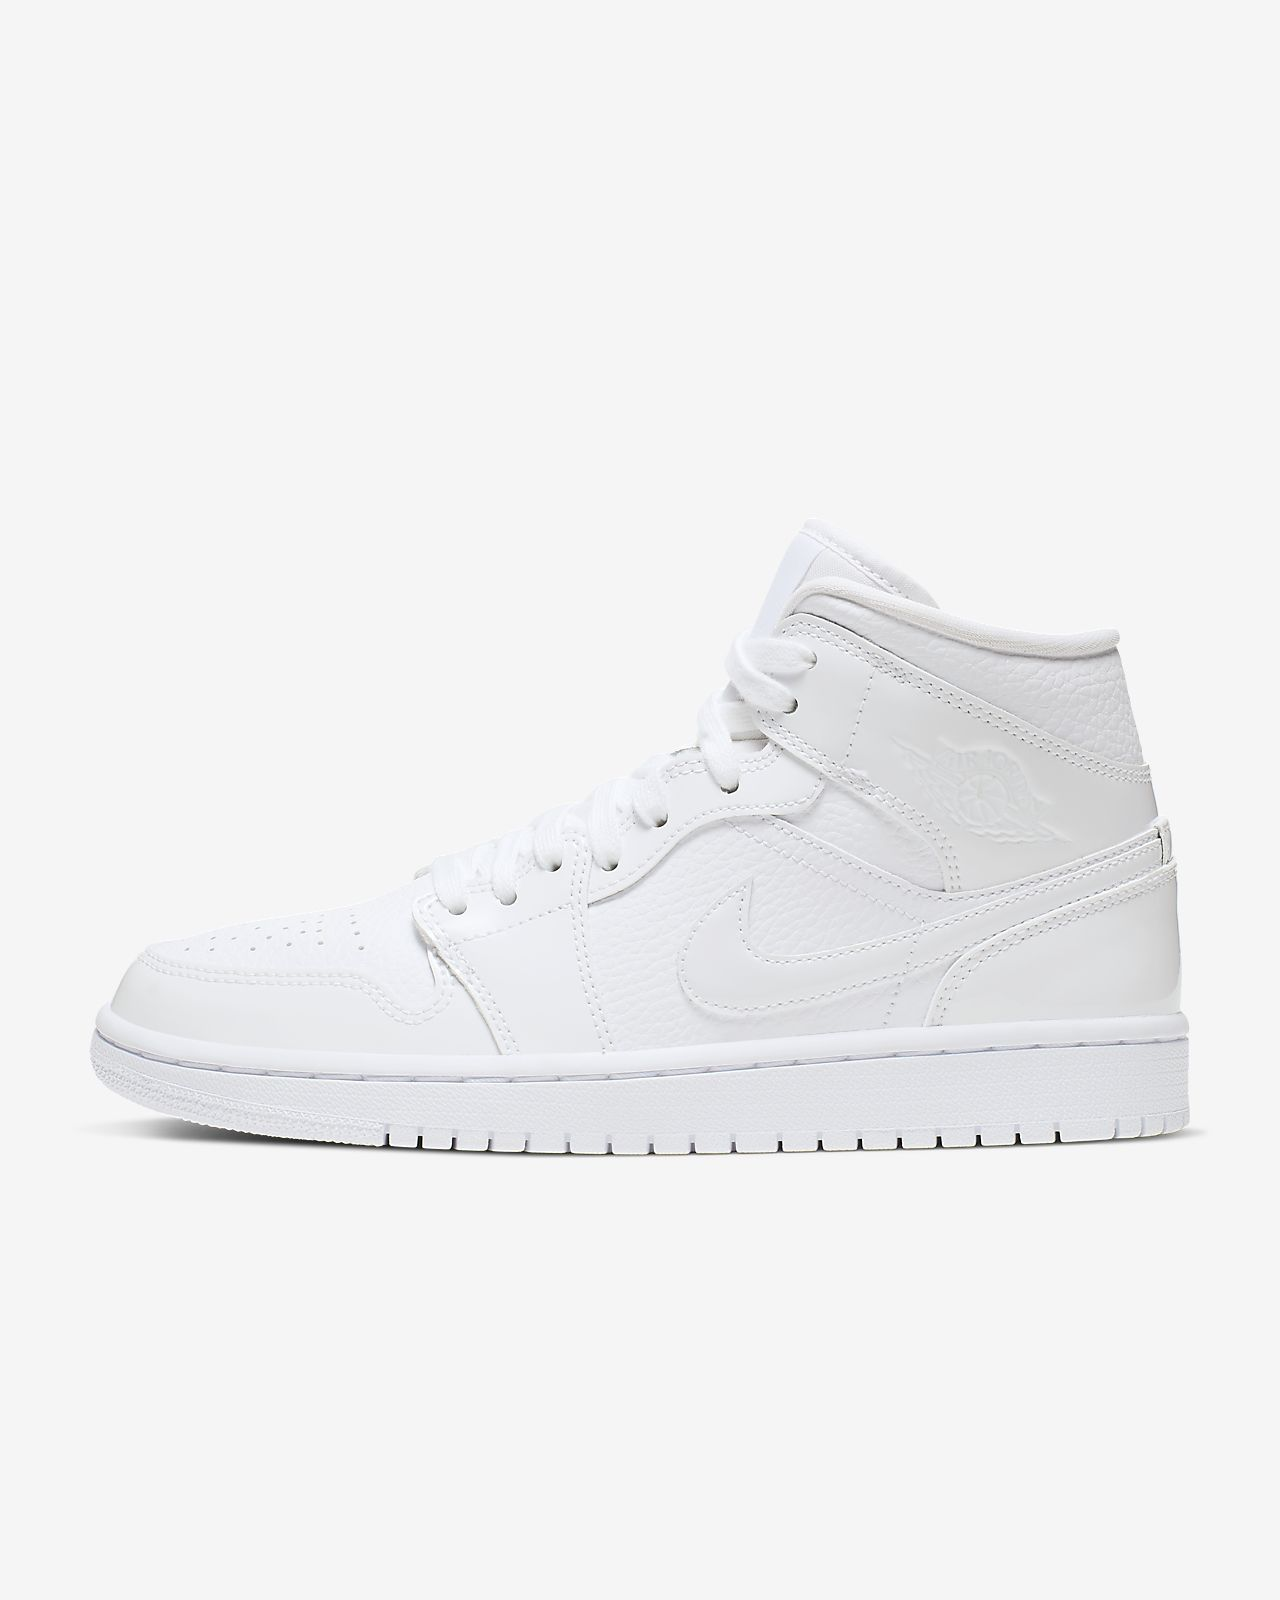 all white jordan ones